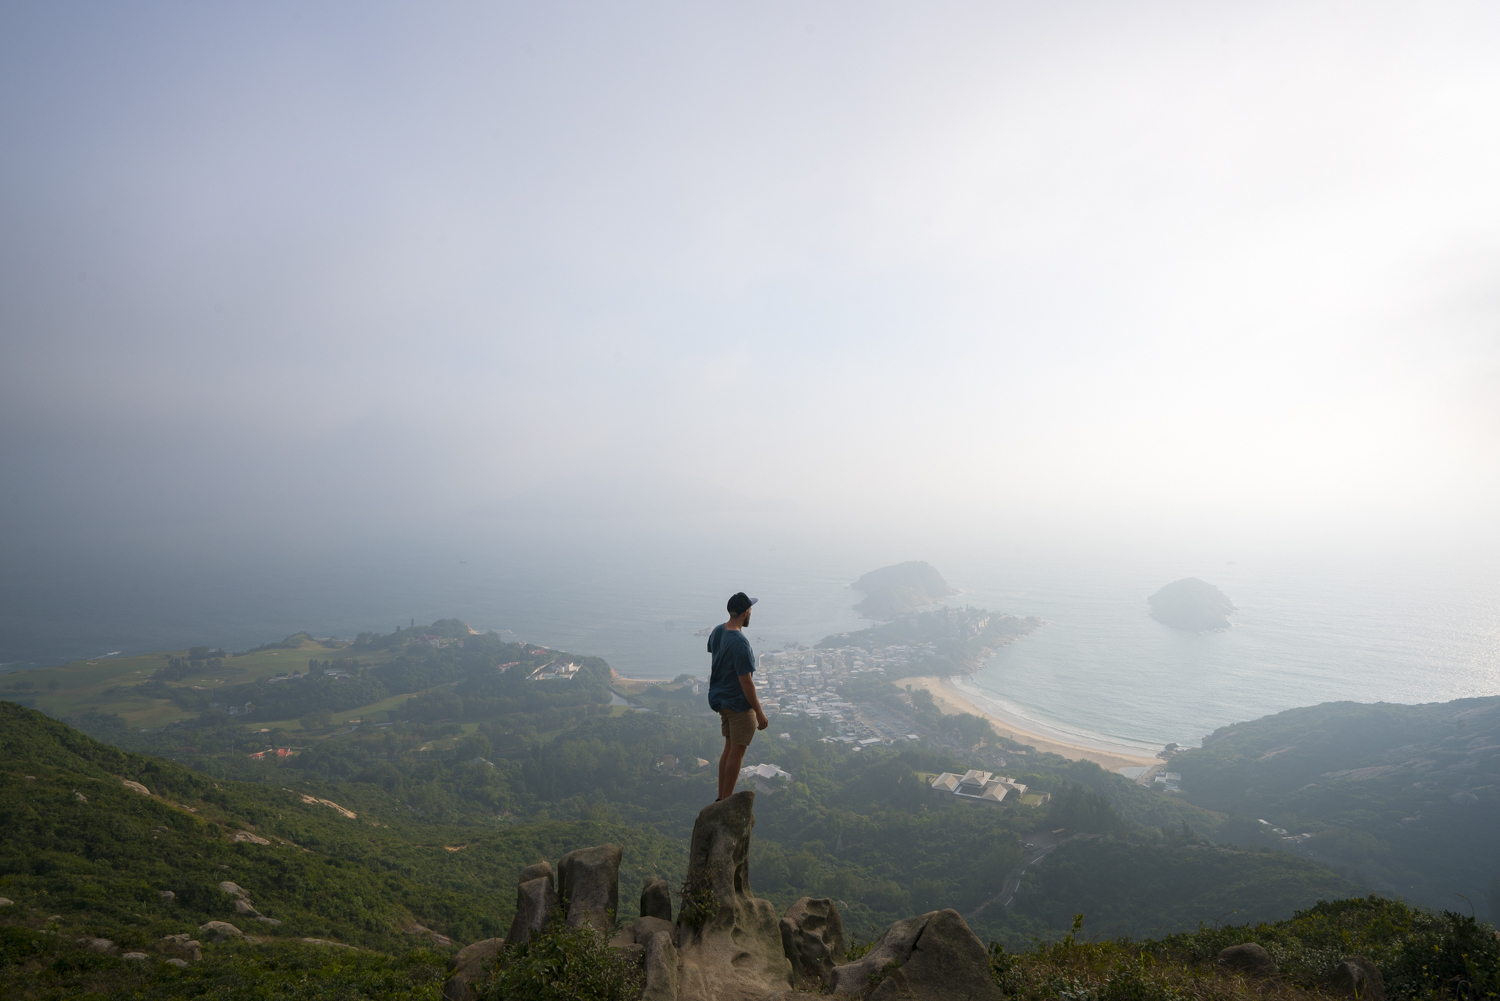 Looking down on Shek O from the Dragons Back